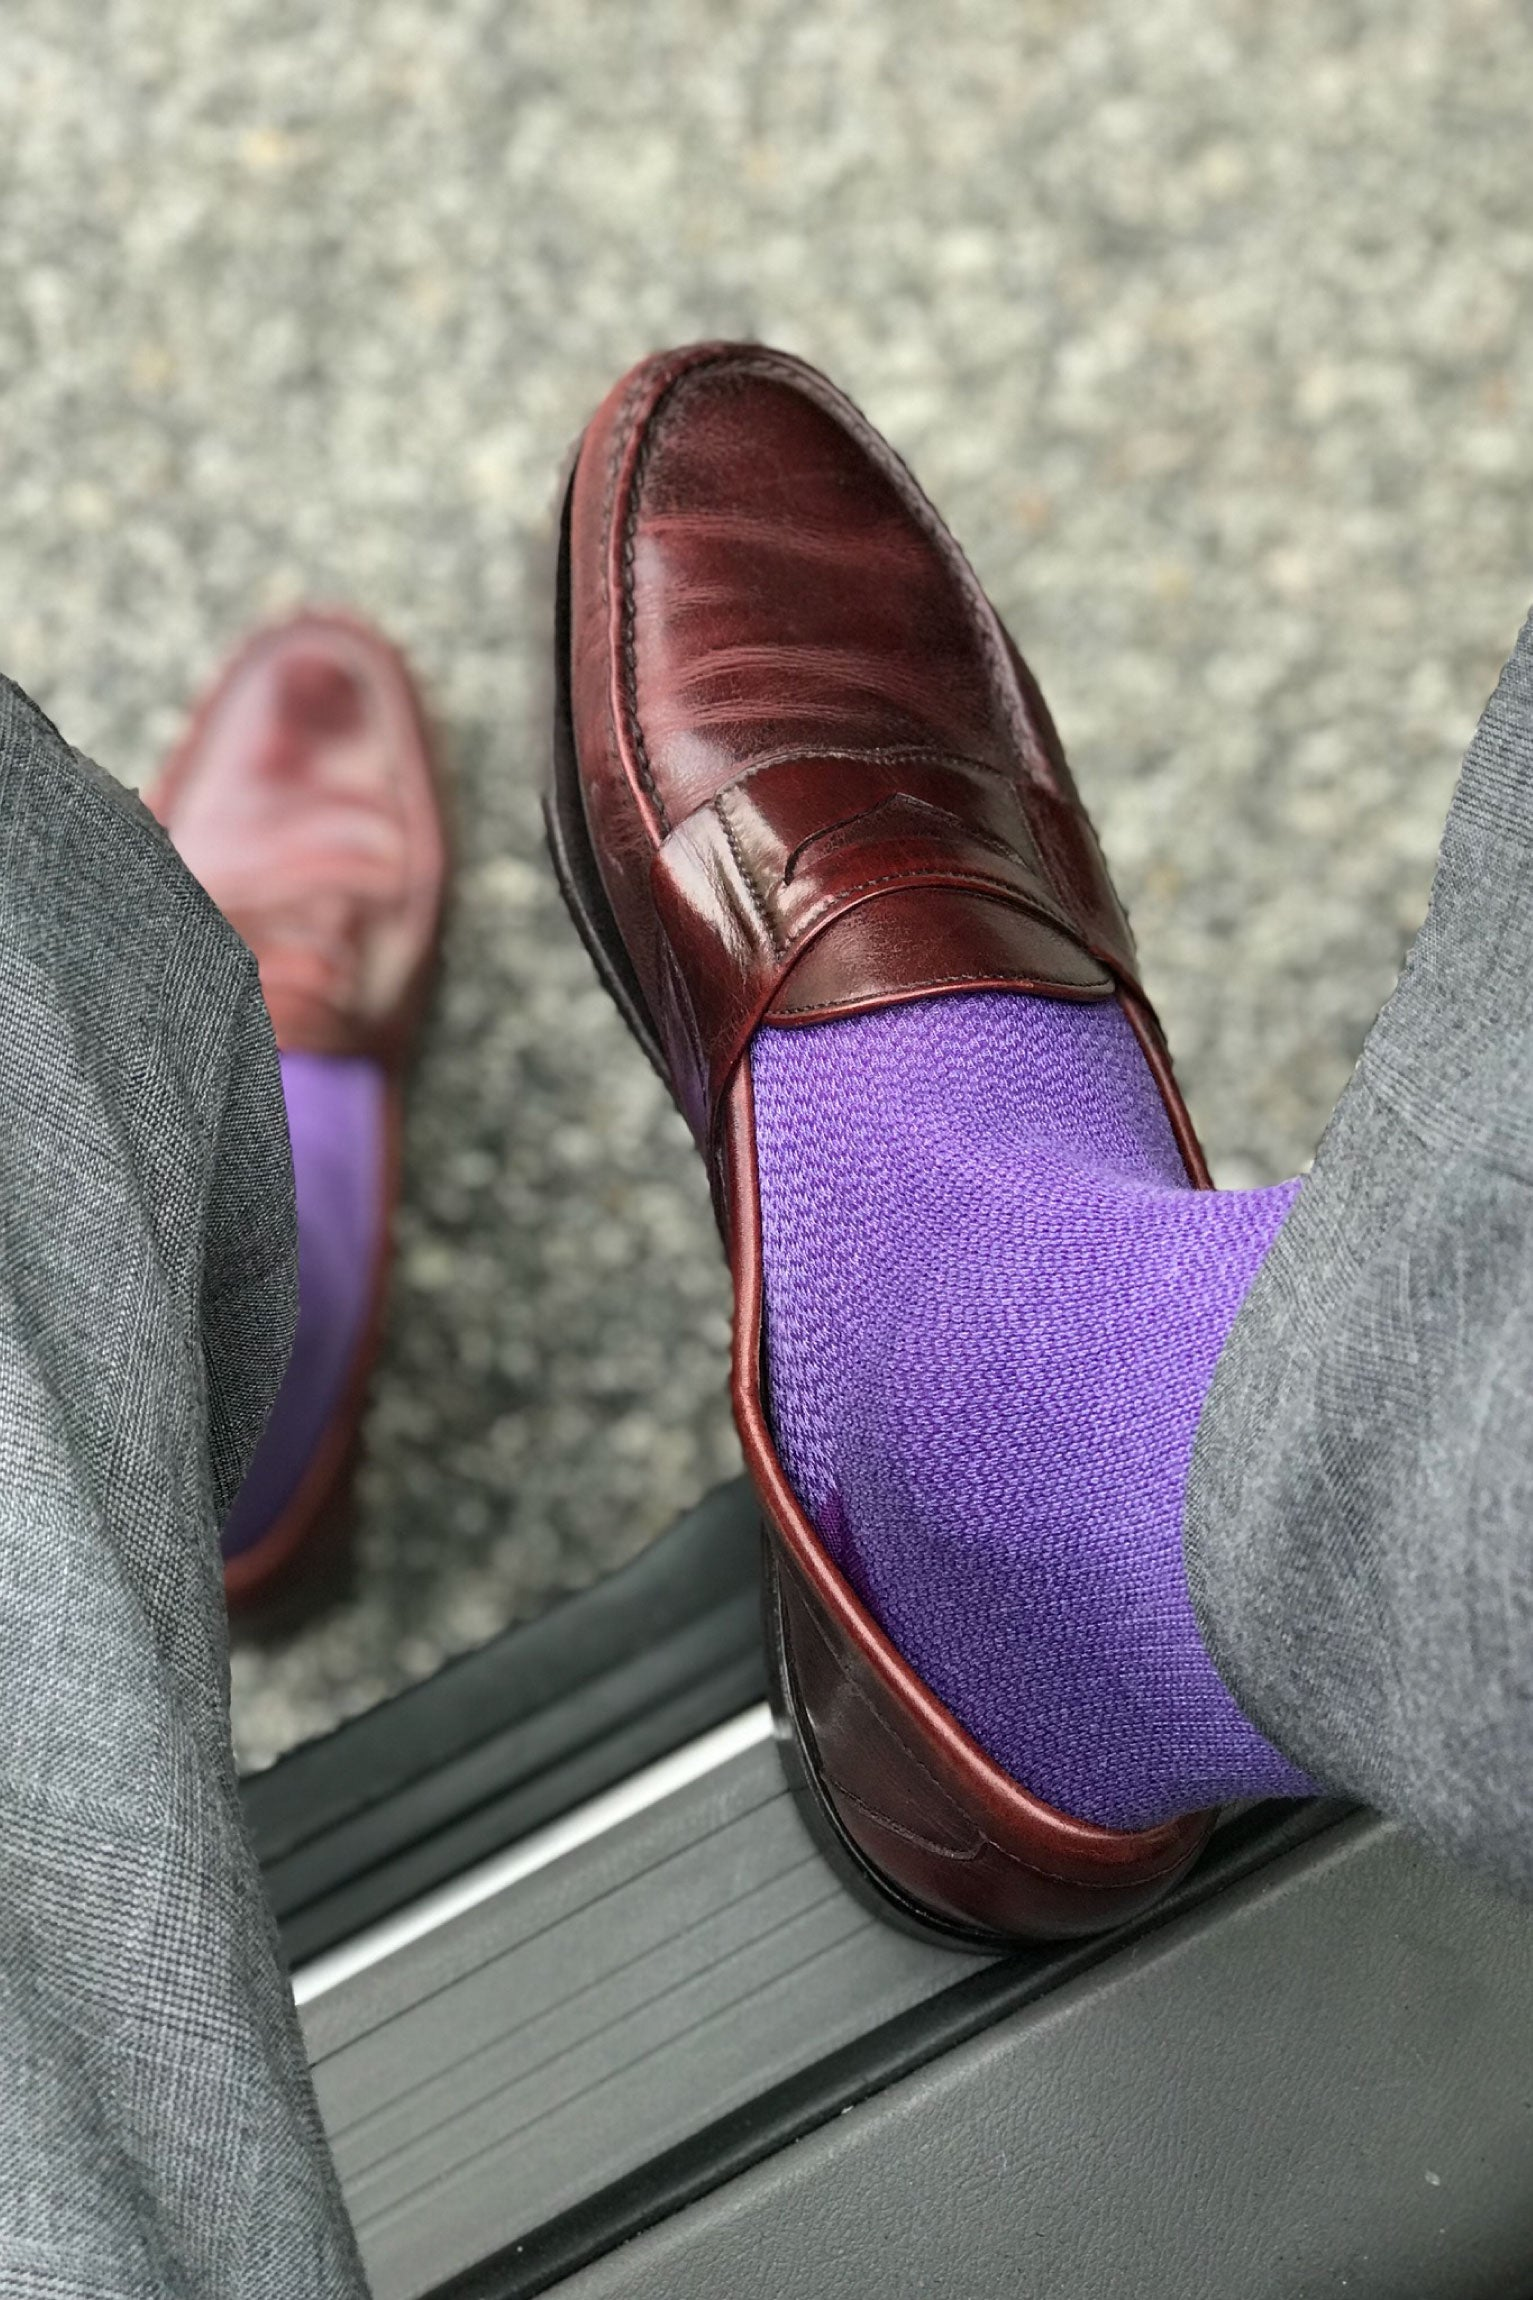 A MATERIAL DIFFERENCE | DITCH THE ARCHAIC COTTON SOCKS